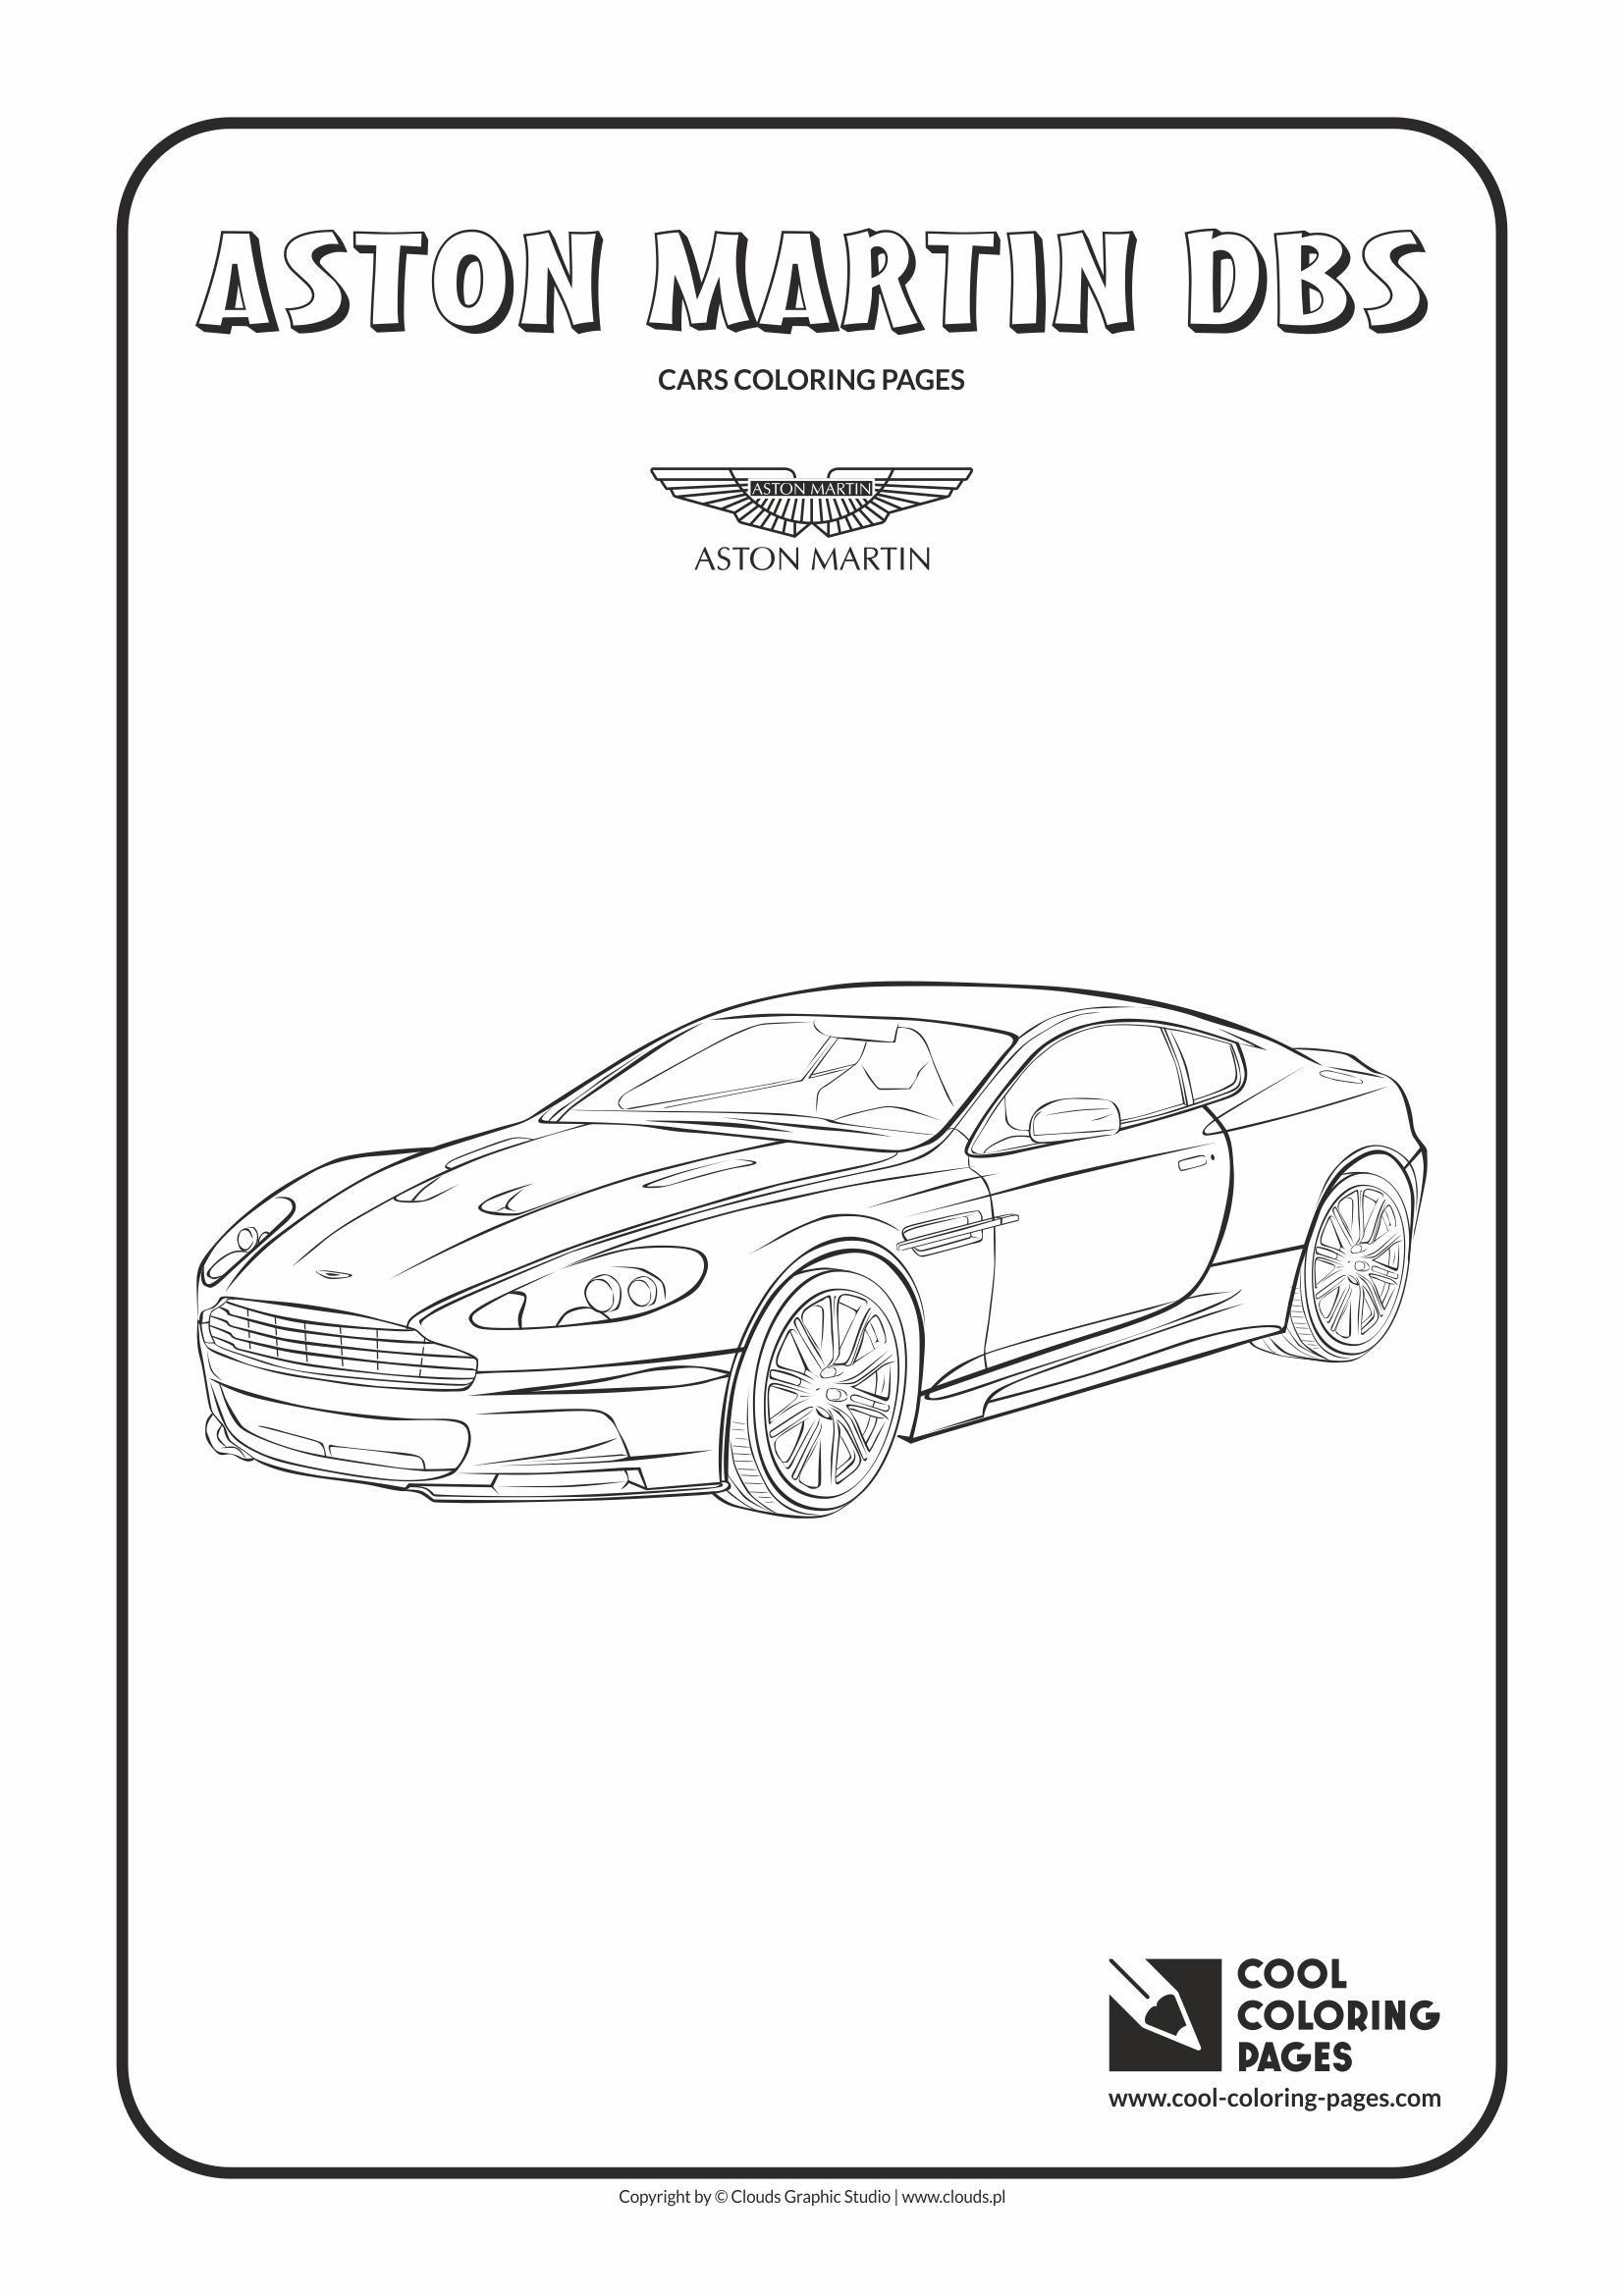 Cool Coloring Pages - Vehicles / Aston Martin DBS / Coloring page with Aston Martin DBS